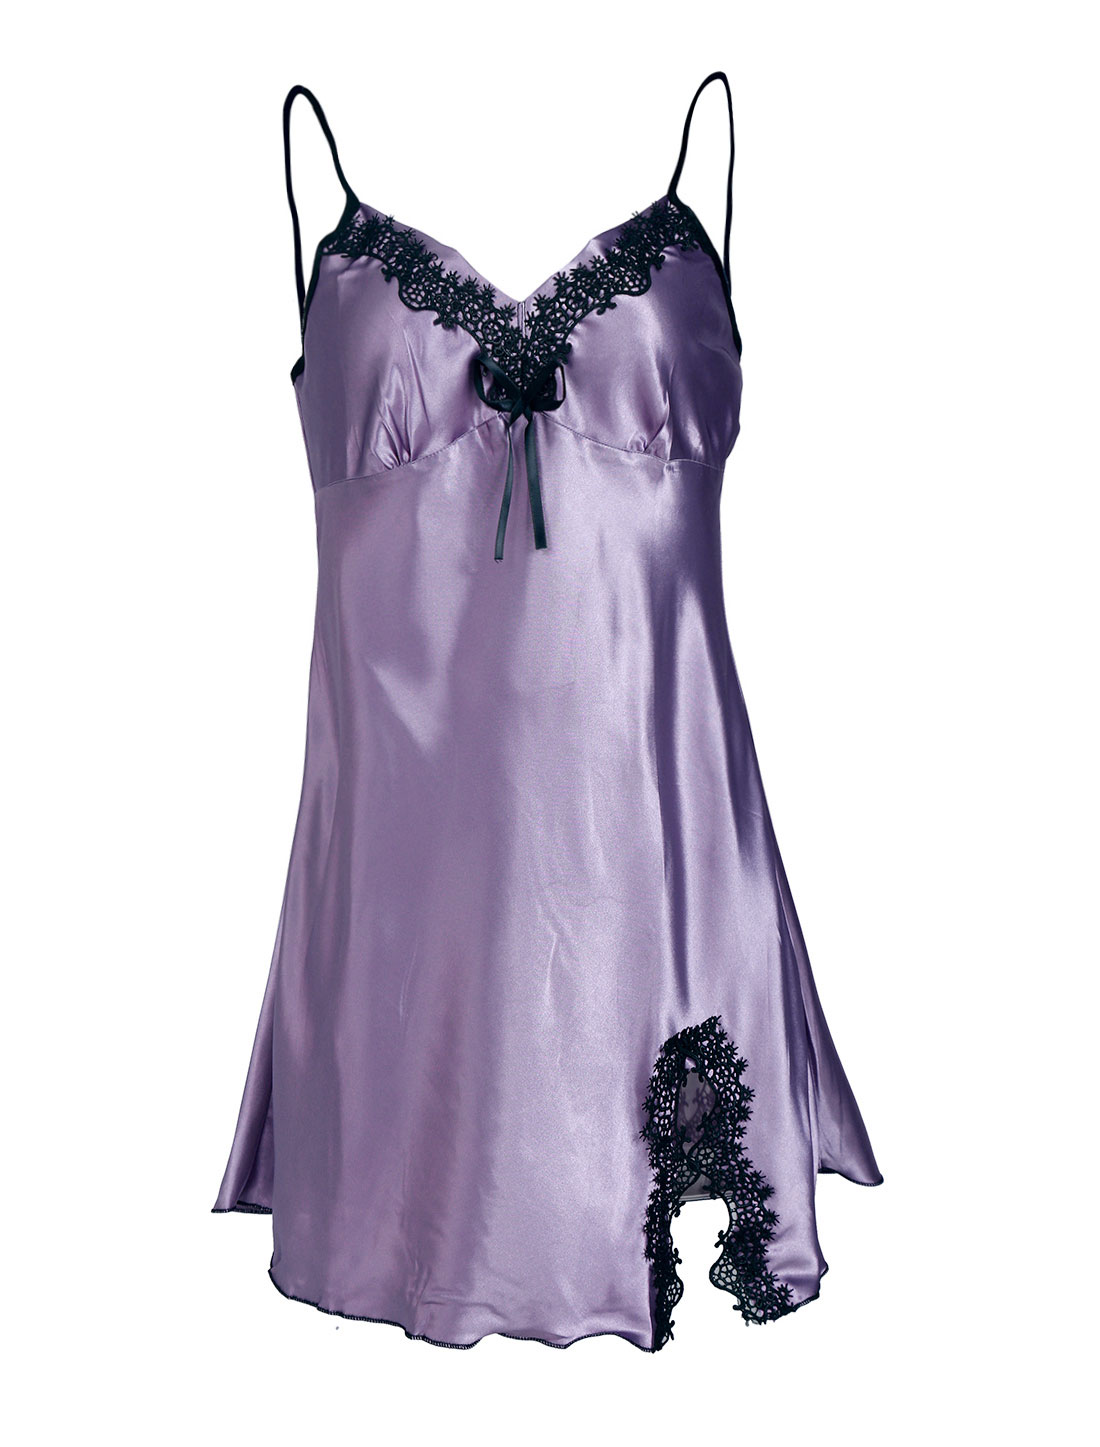 Women Satin Lace Trim Sleepwear Nightgown Pajama Slip Dress Lavender-Lace M